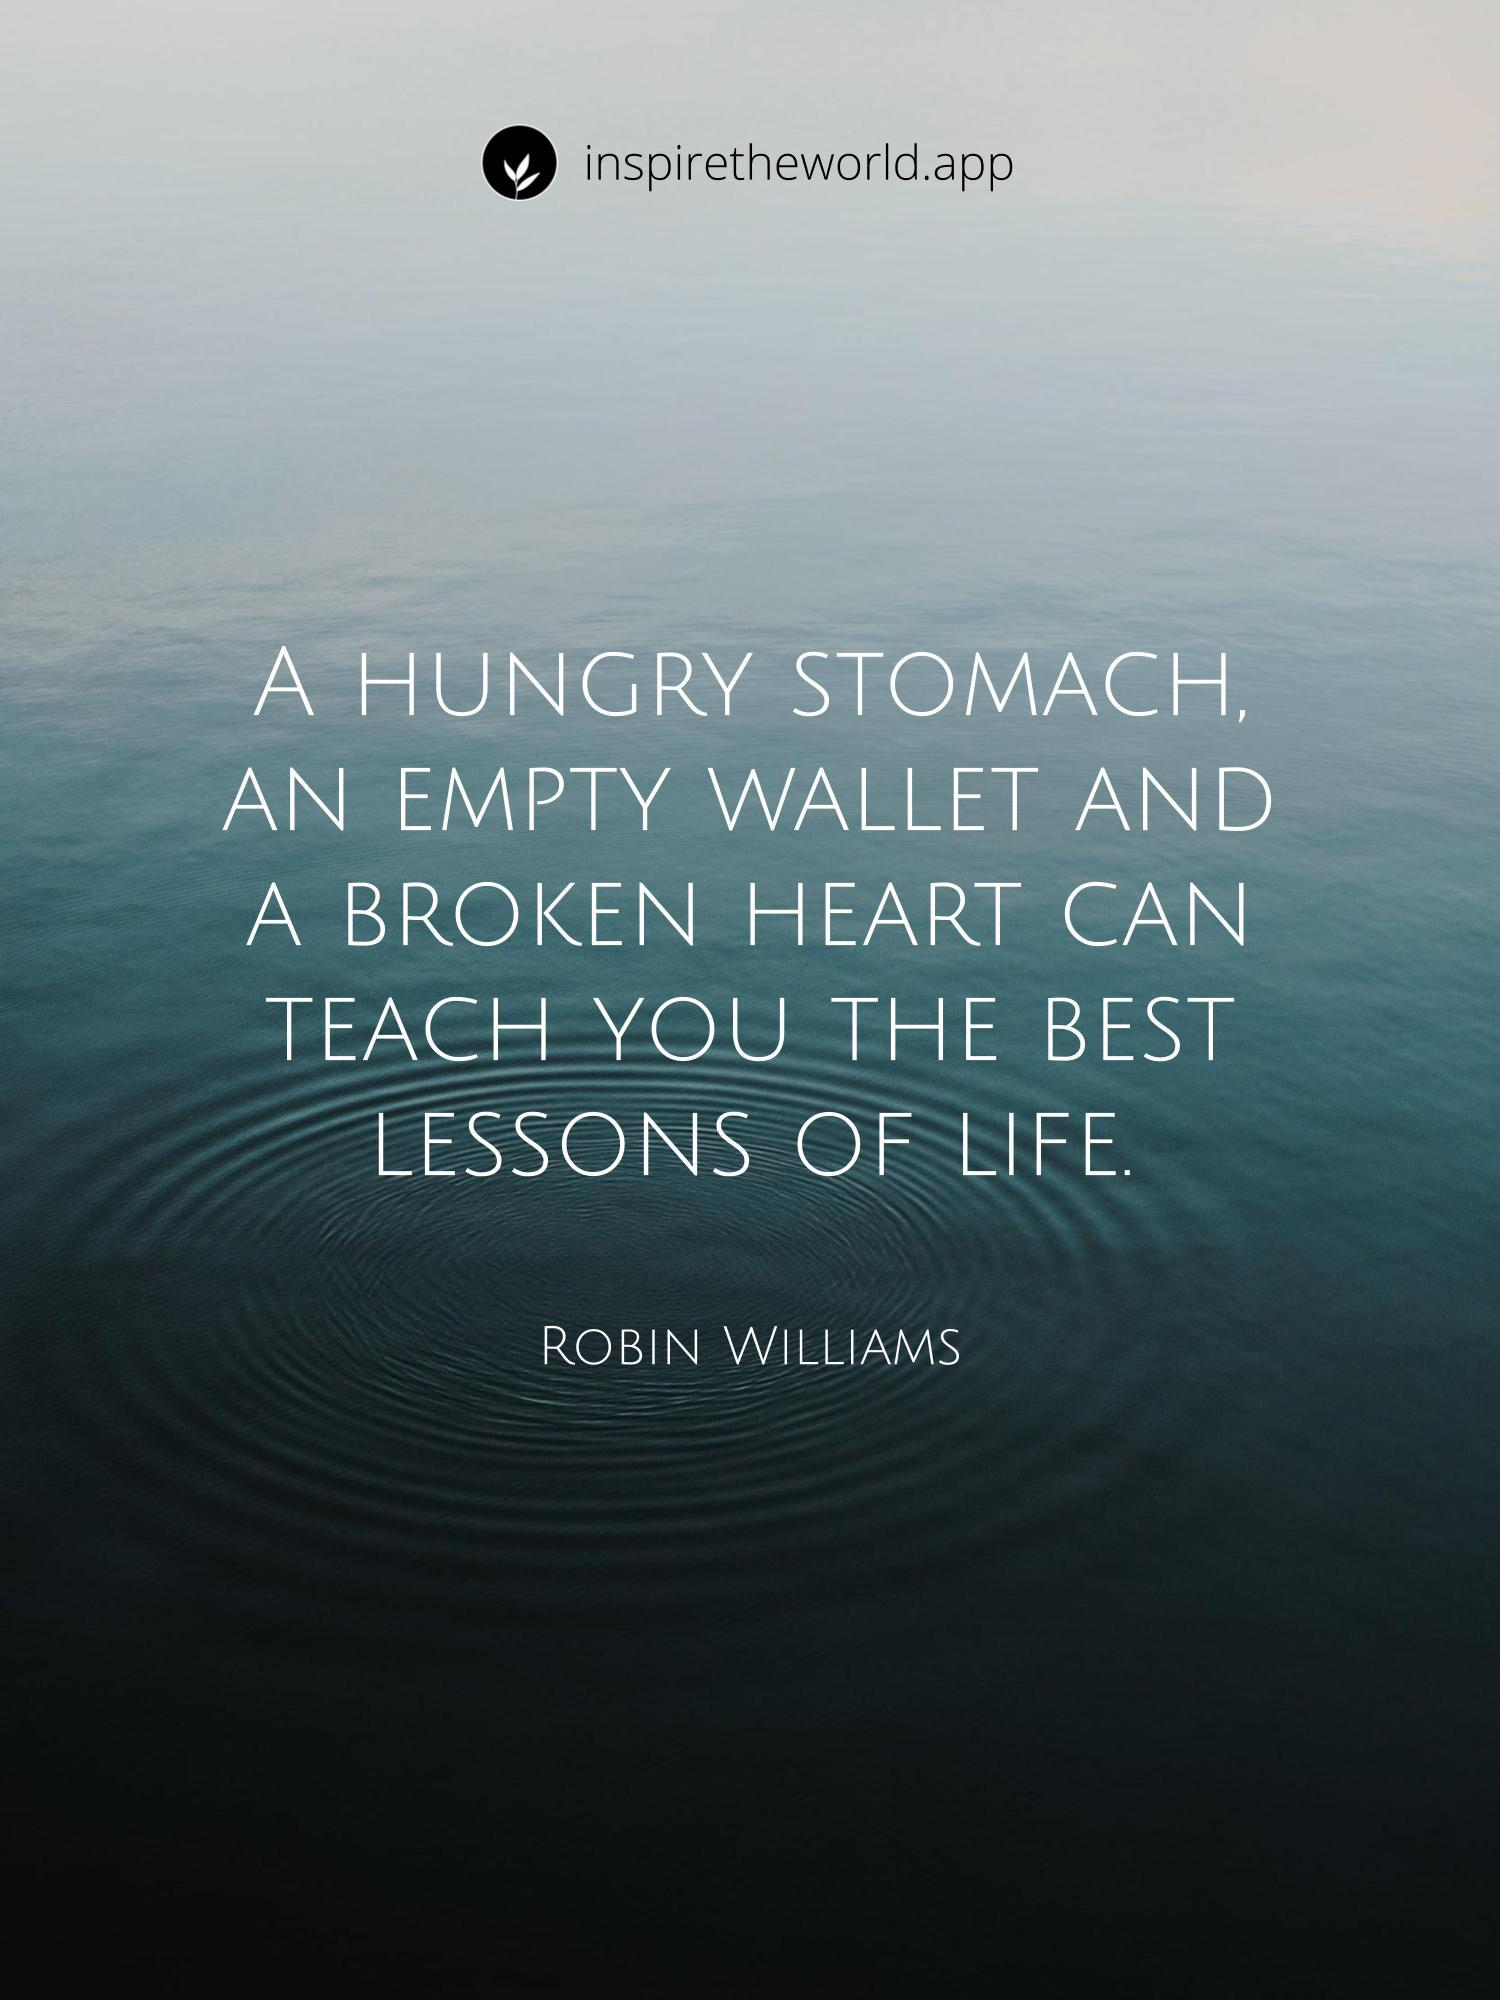 A hungry stomach, an empty wallet and a broken heart can teach you the best lessons of life. — Robin Williams [1500×2000]